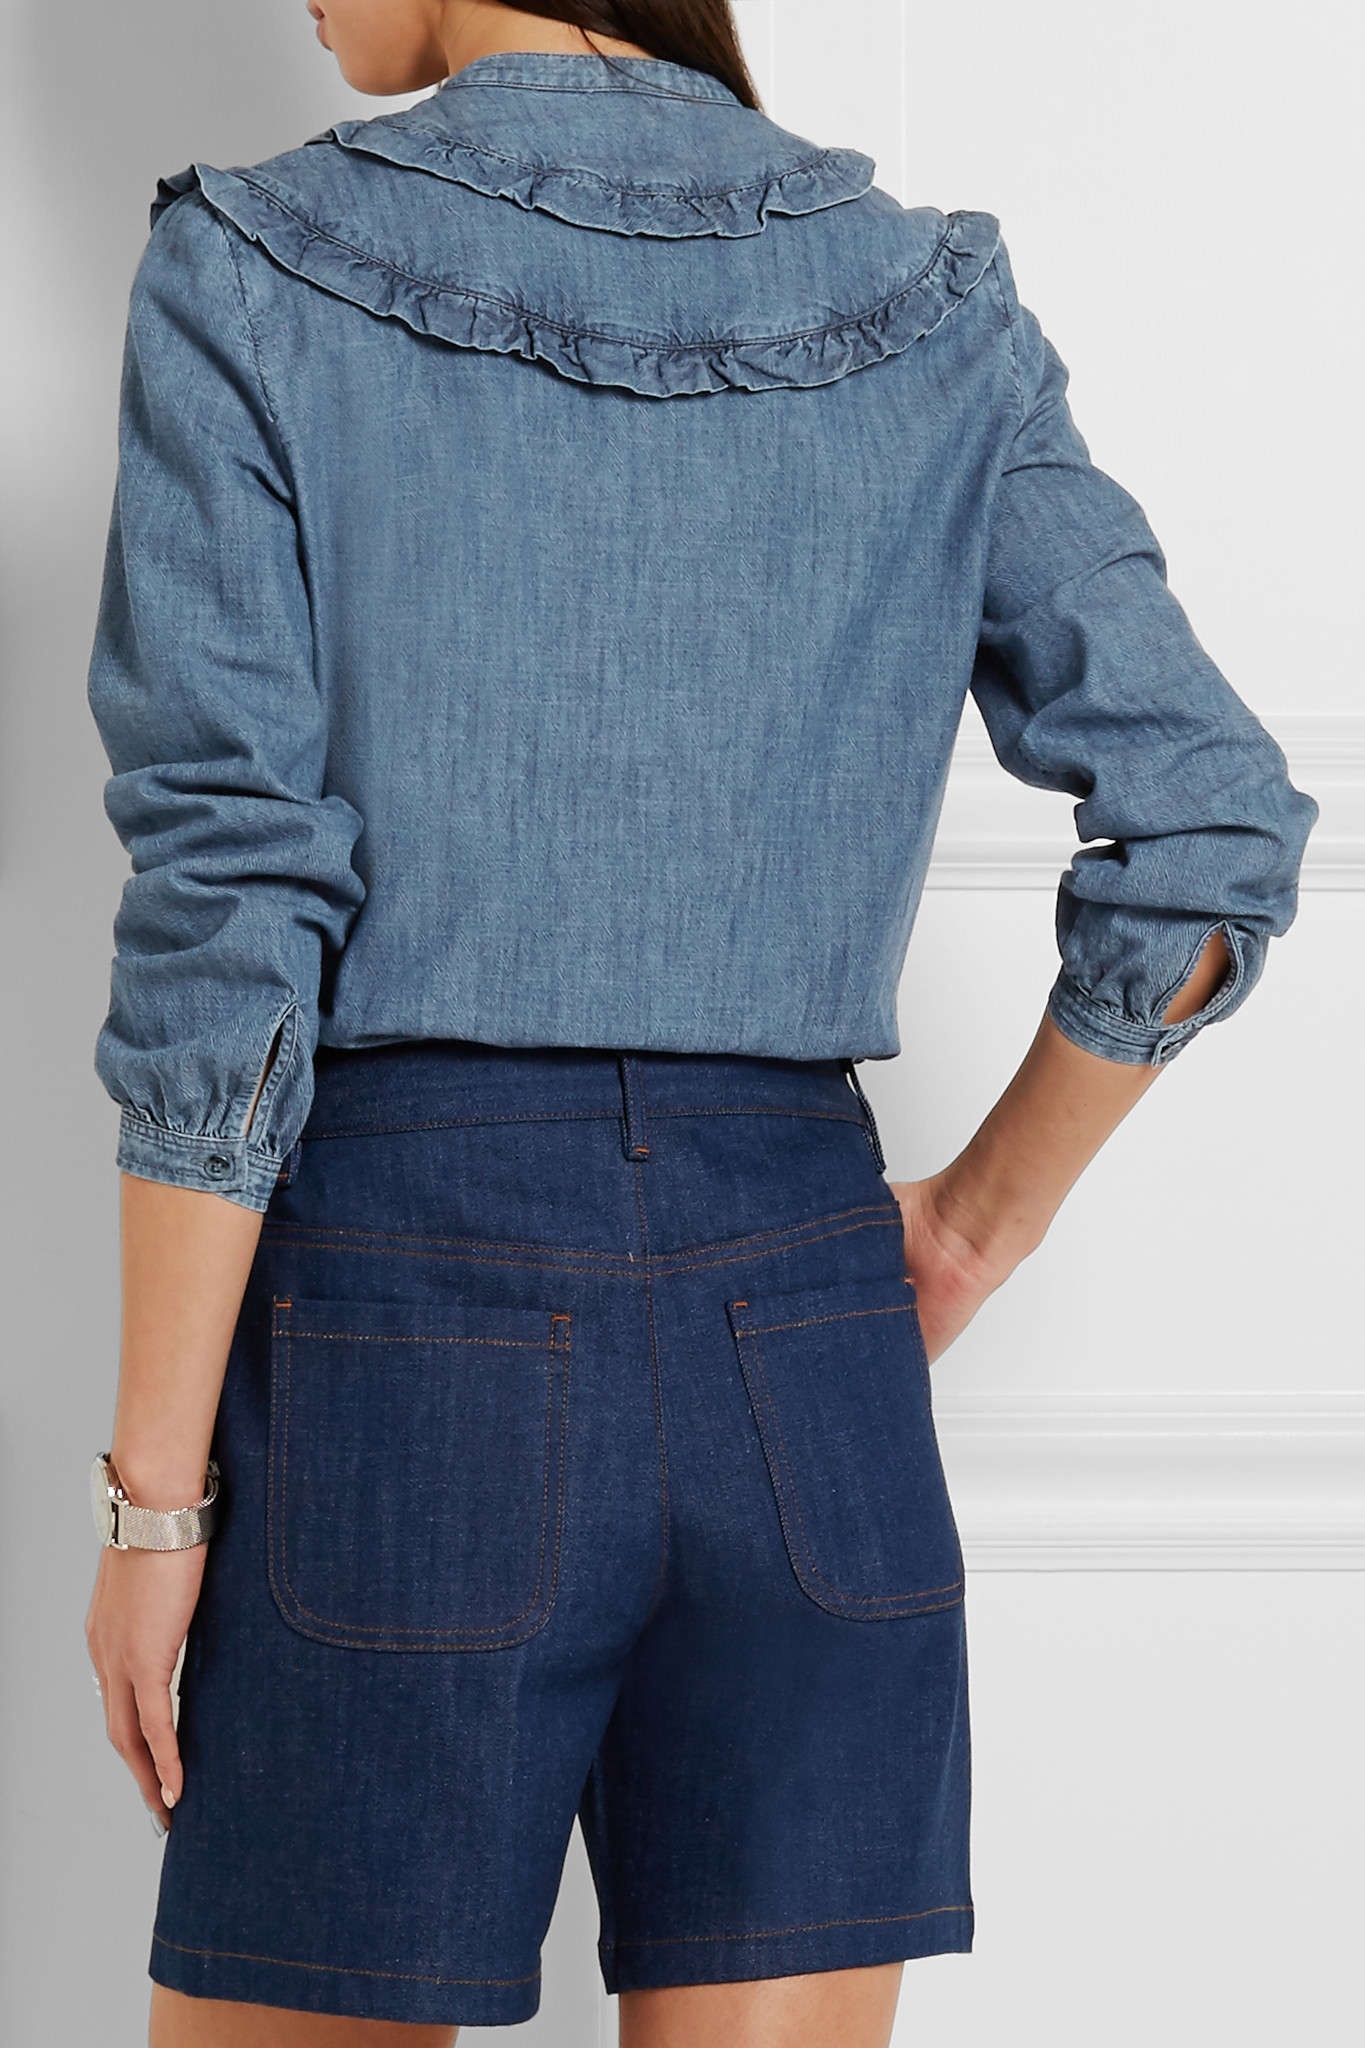 A P C Stevy Ruffle Trimmed Cotton Chambray Shirt In Blue